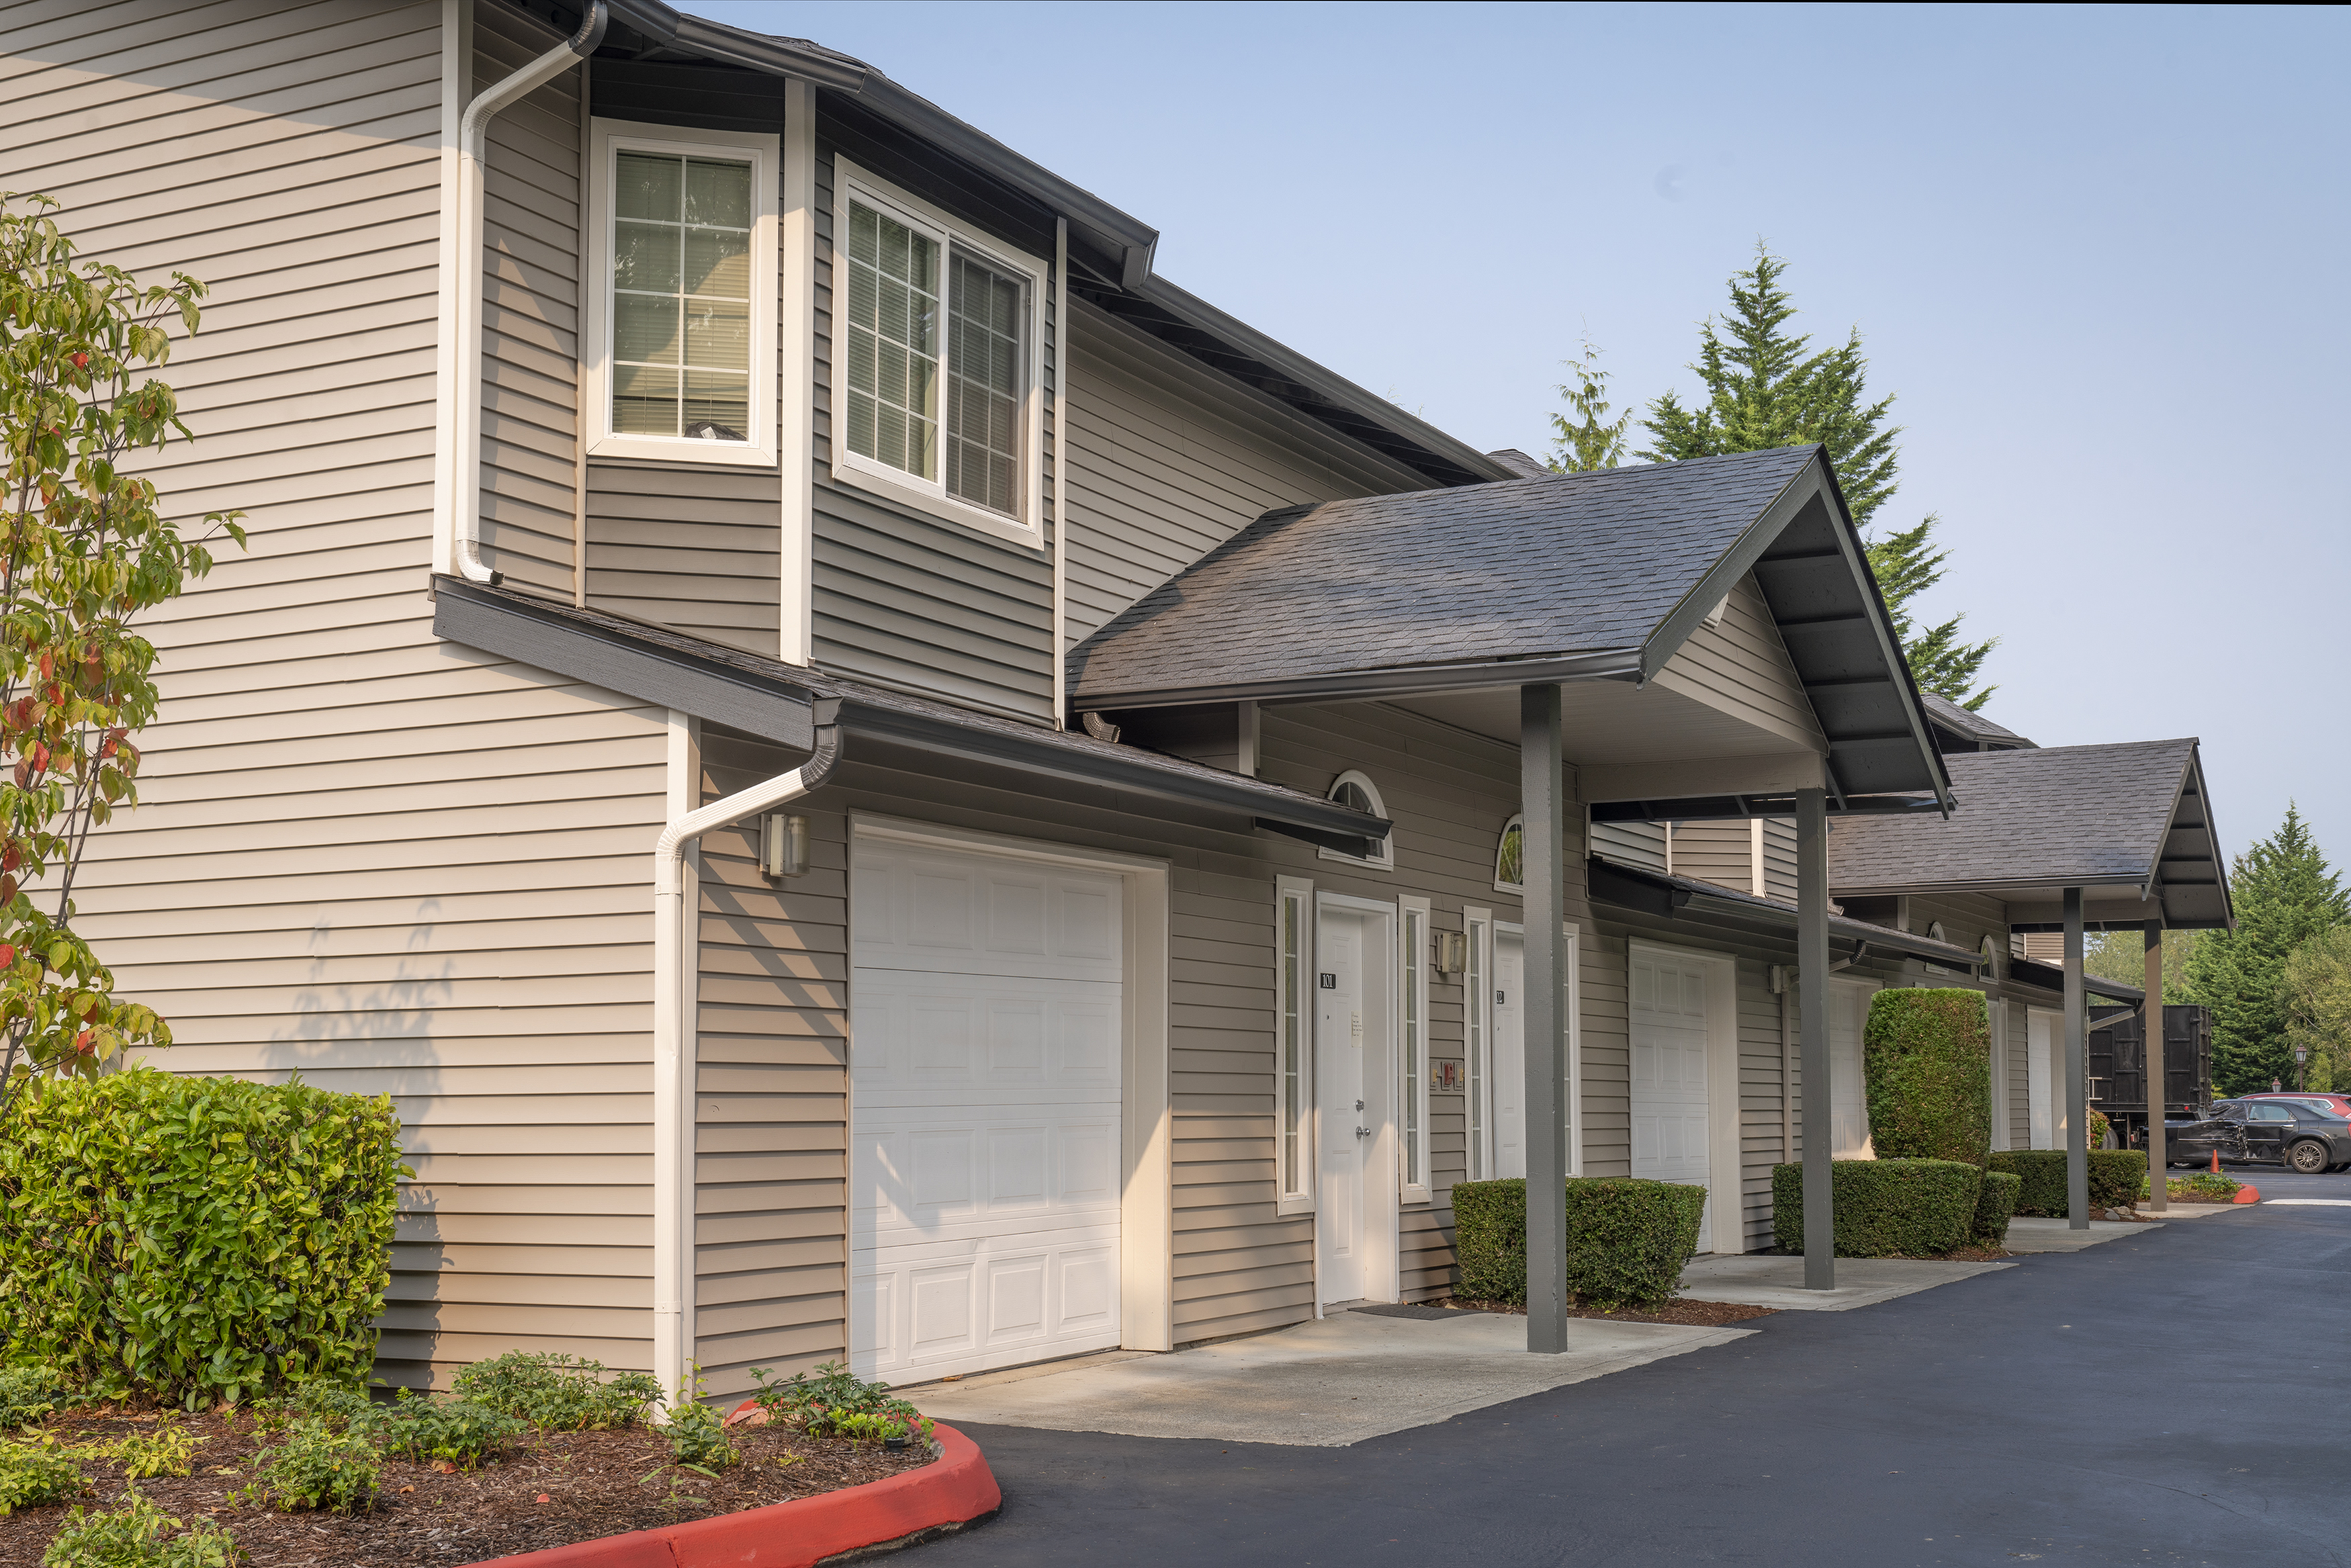 Image of Townhomes With Garages Available for Nantucket Gate